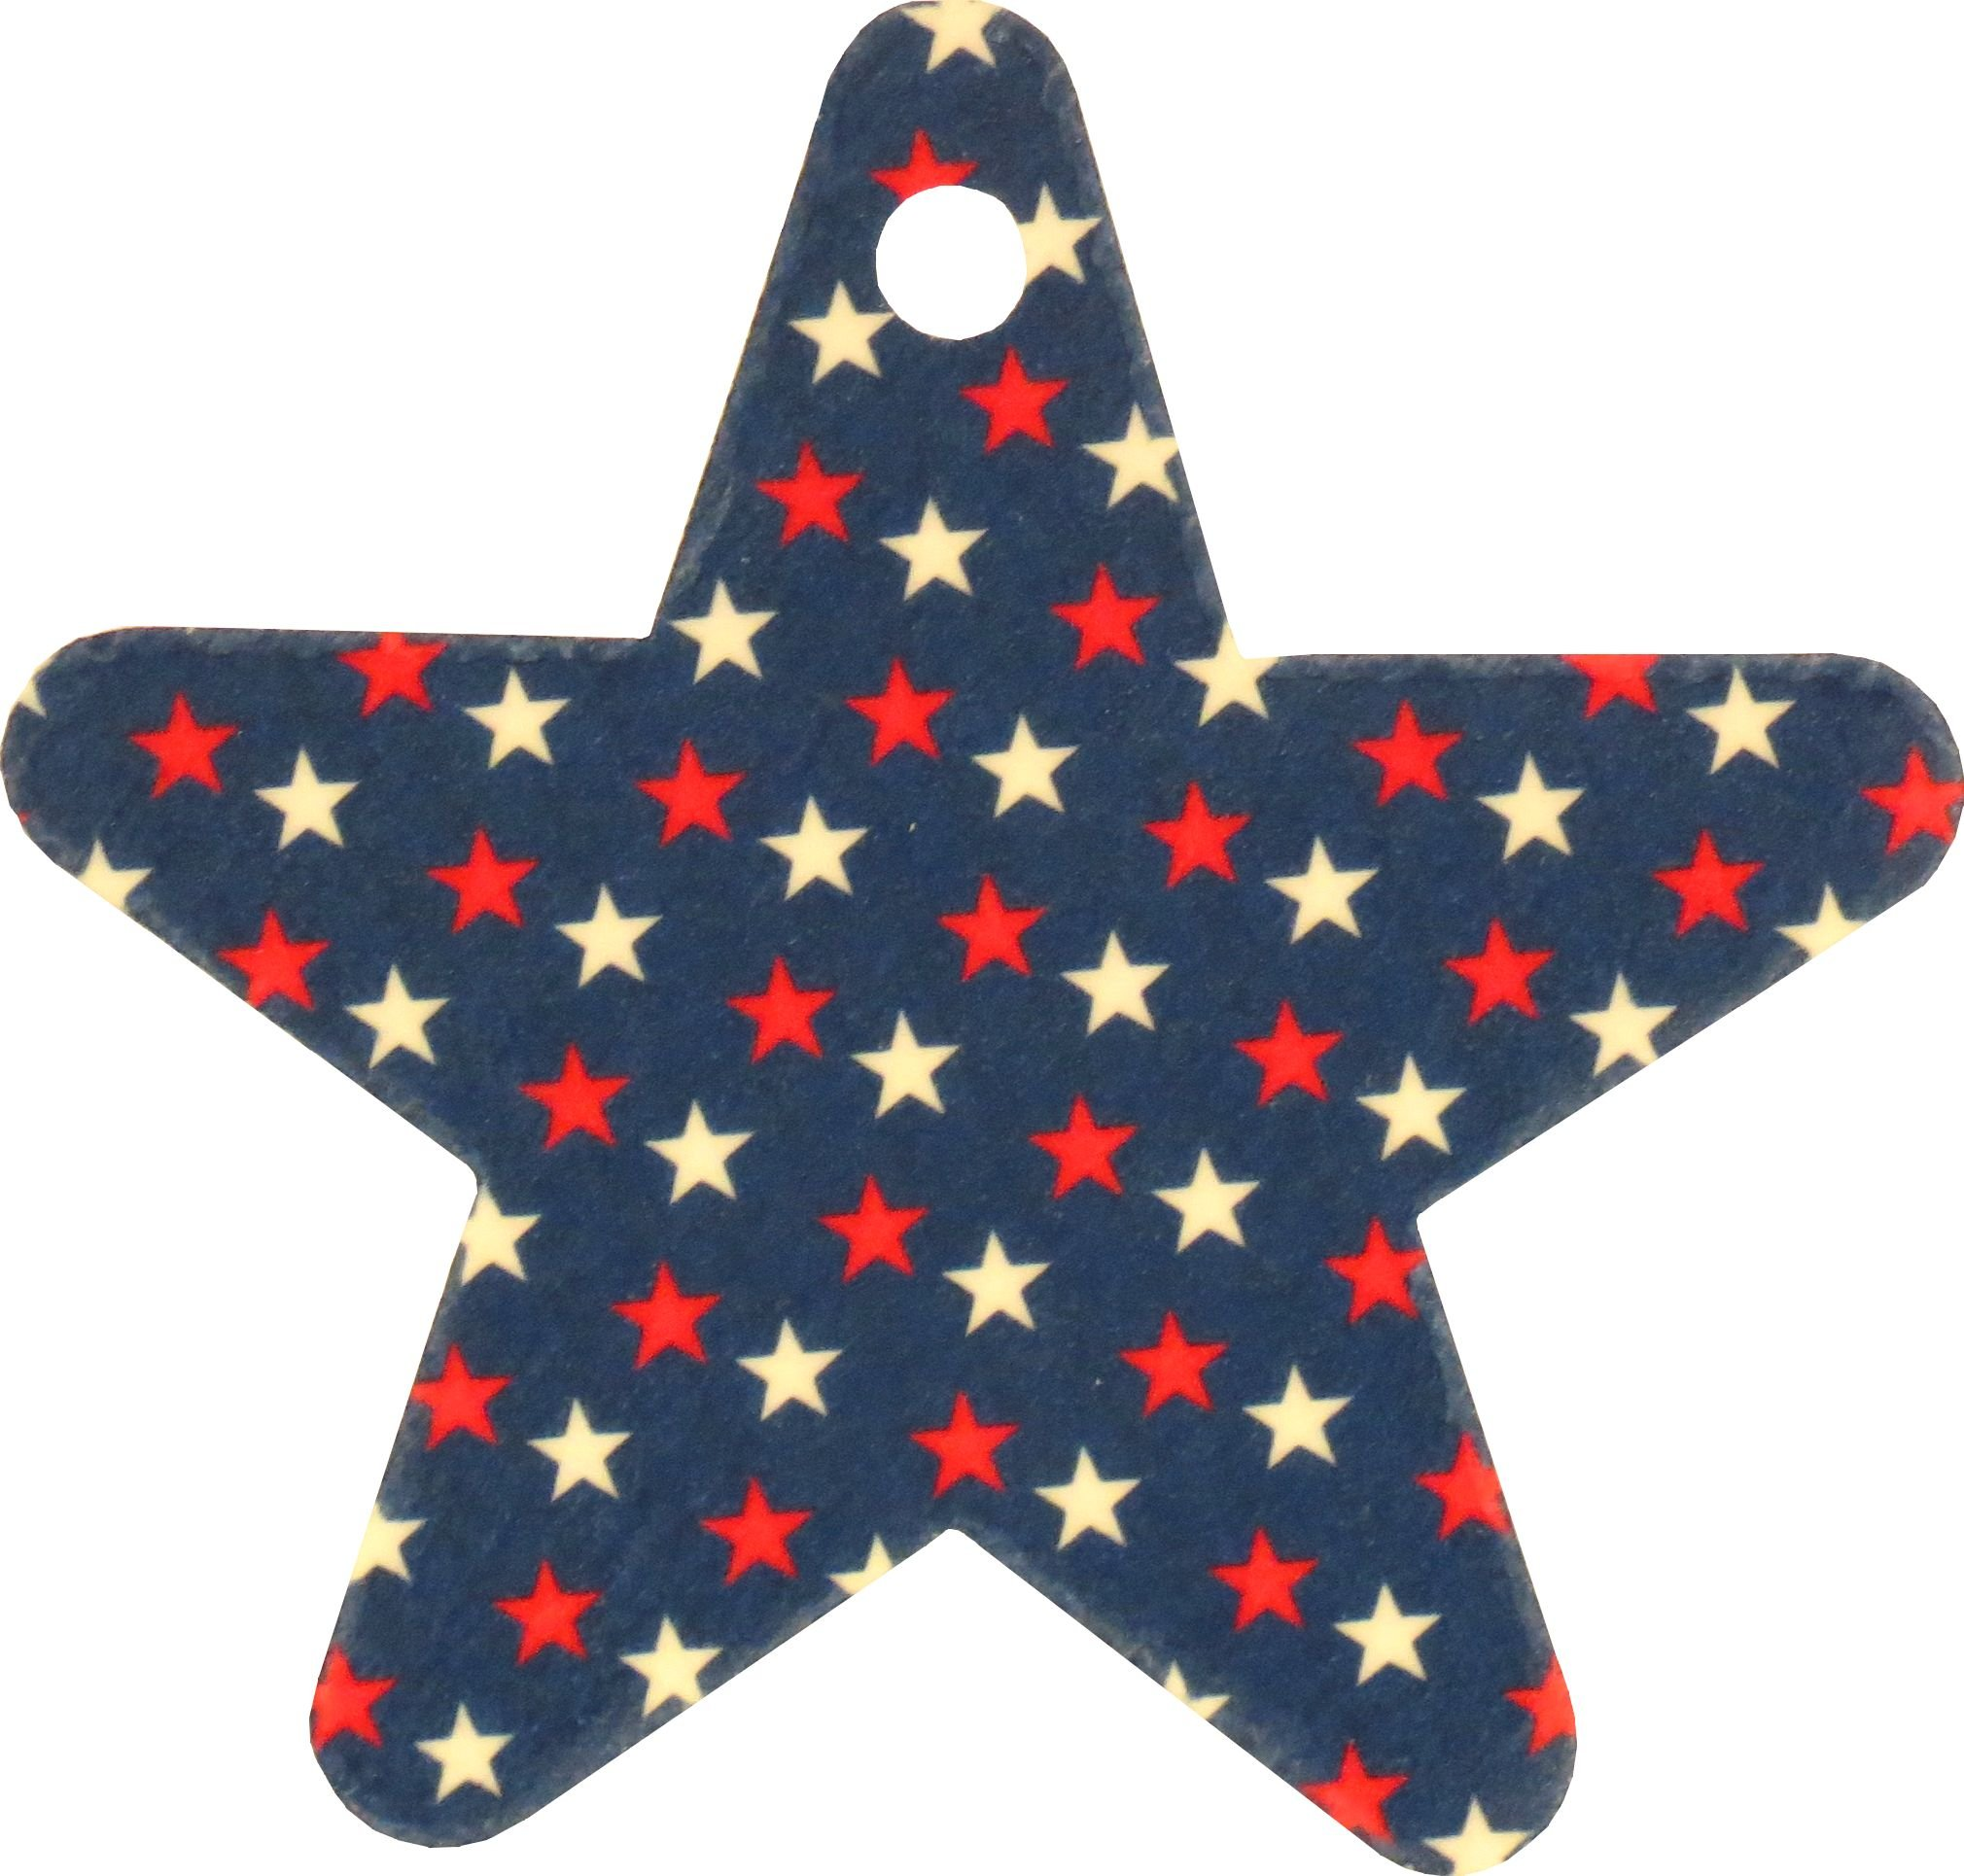 Set of Stars on Star Air Fresheners, Cedarwood Essential Oil by Eclectic Lady (Image #2)